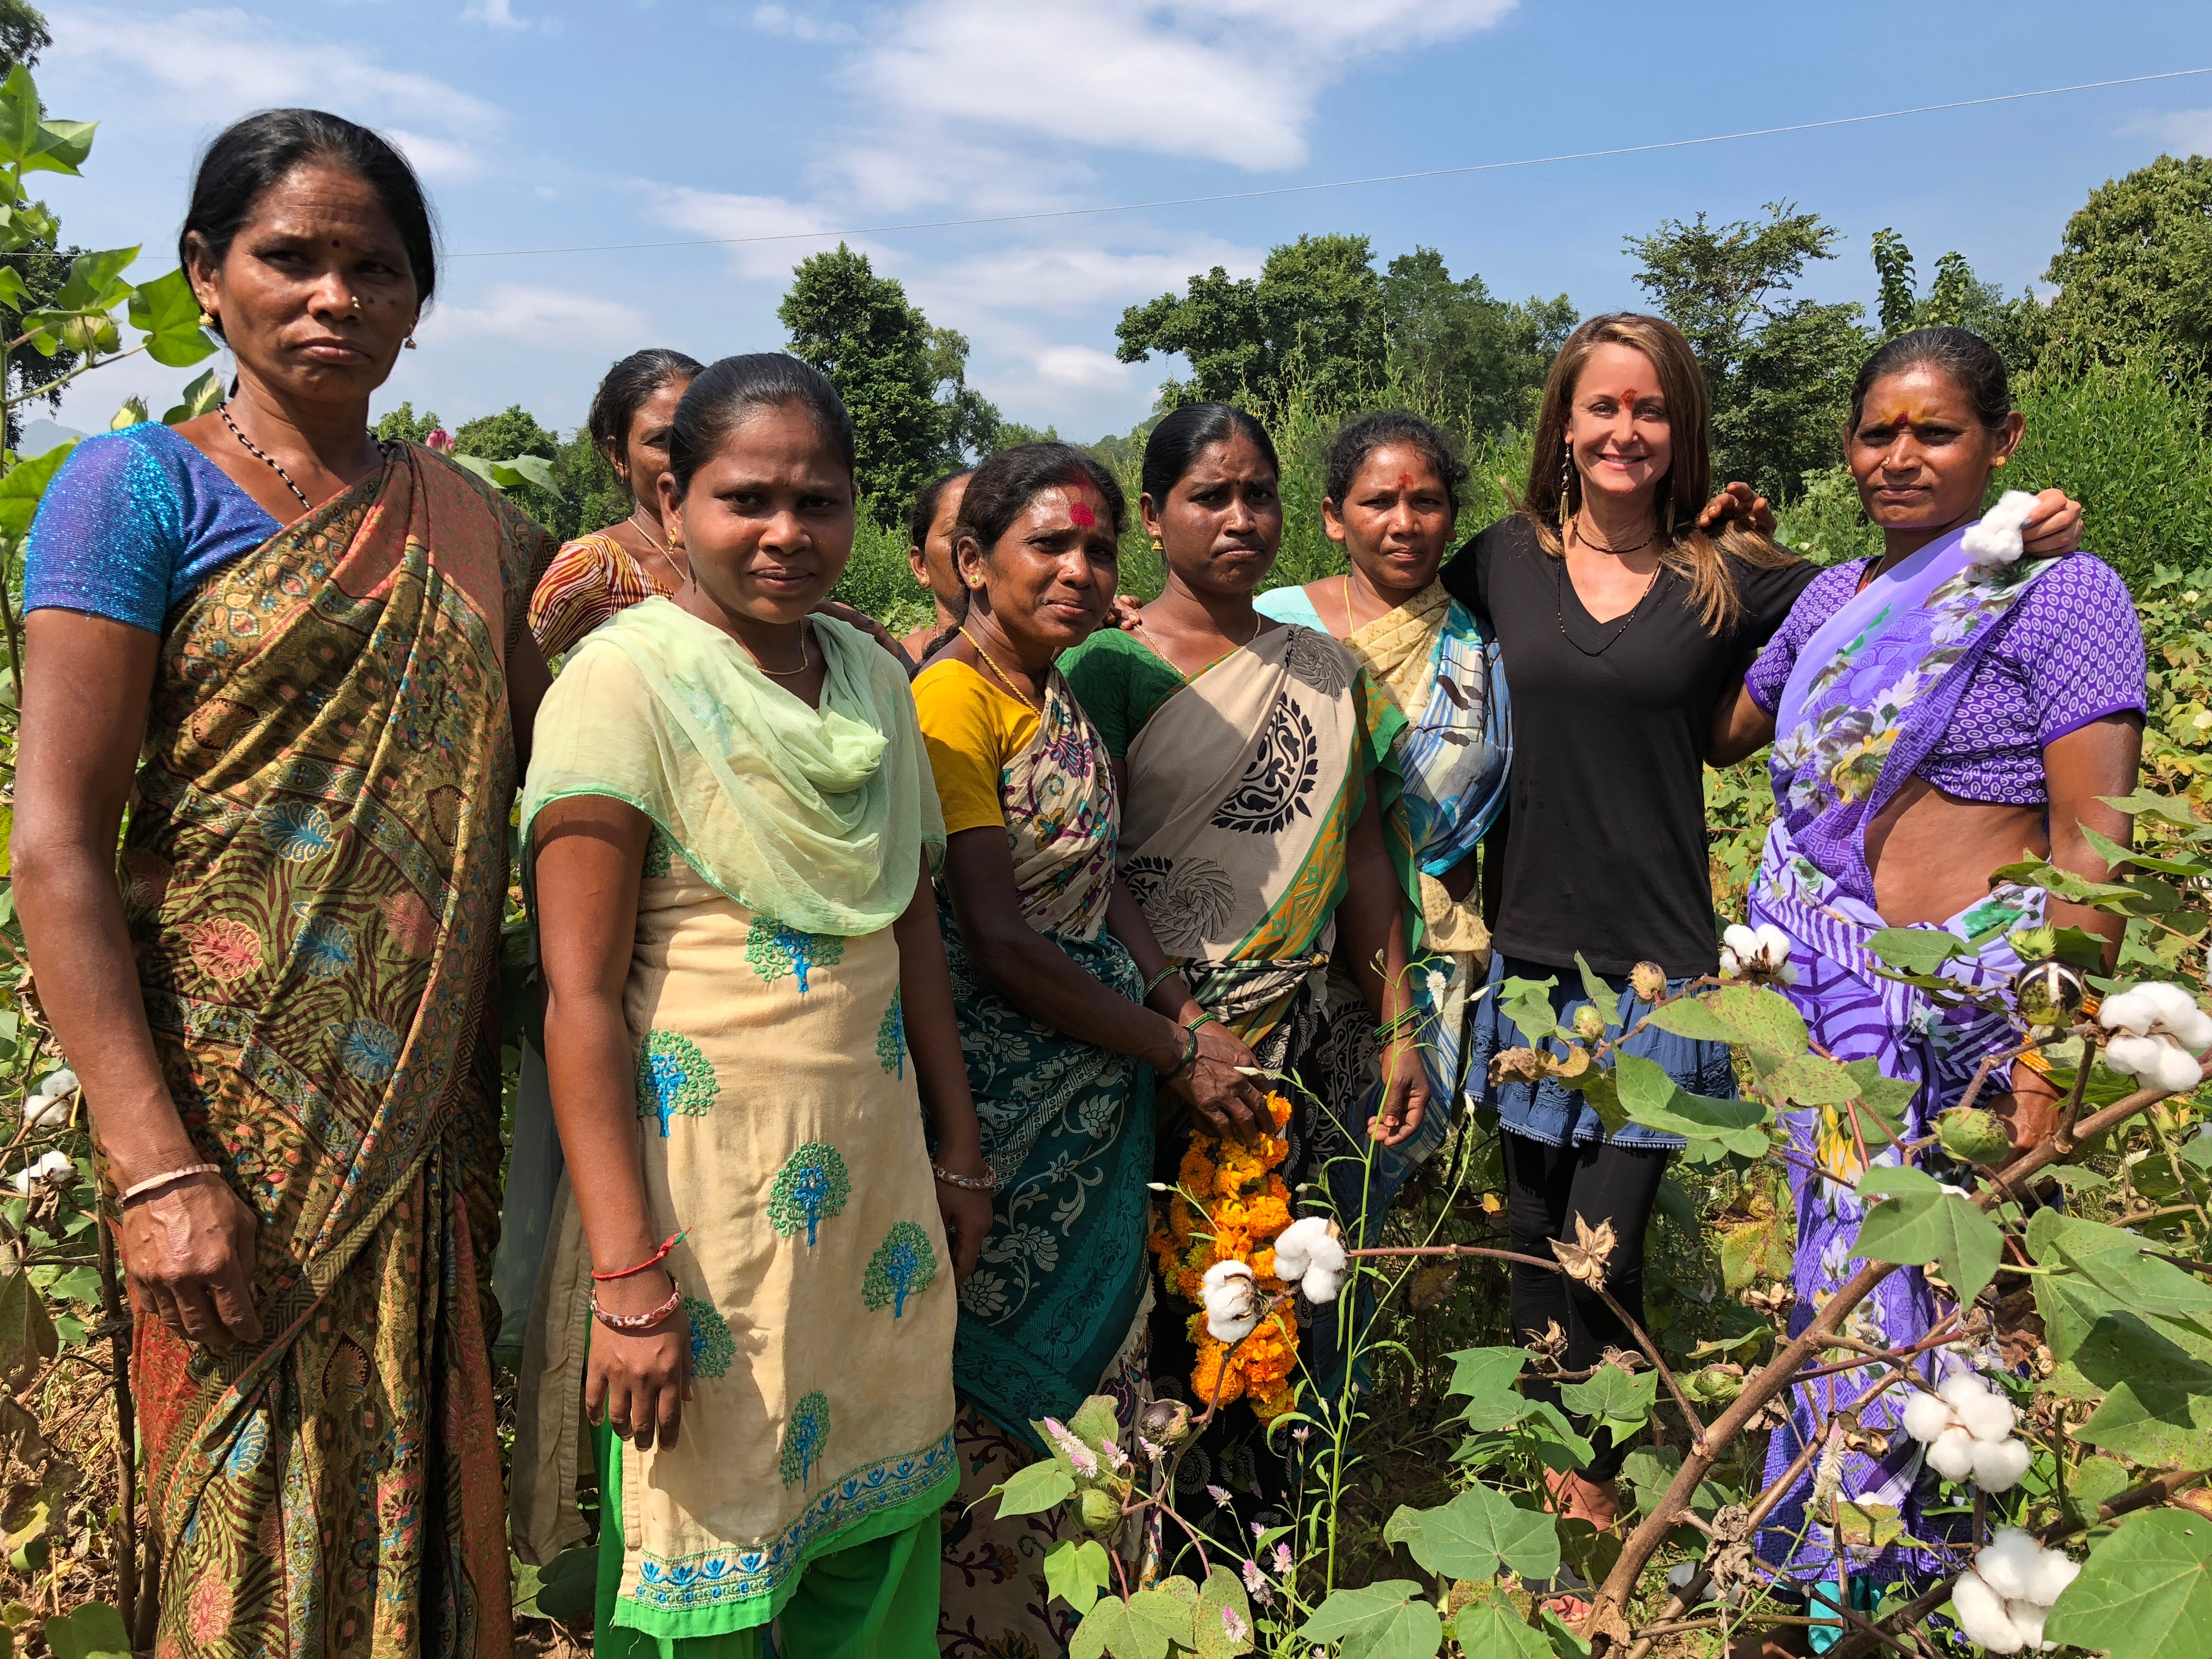 Marci Zaroff, second from right, with cotton farmers in Andhra Pradesh, India.